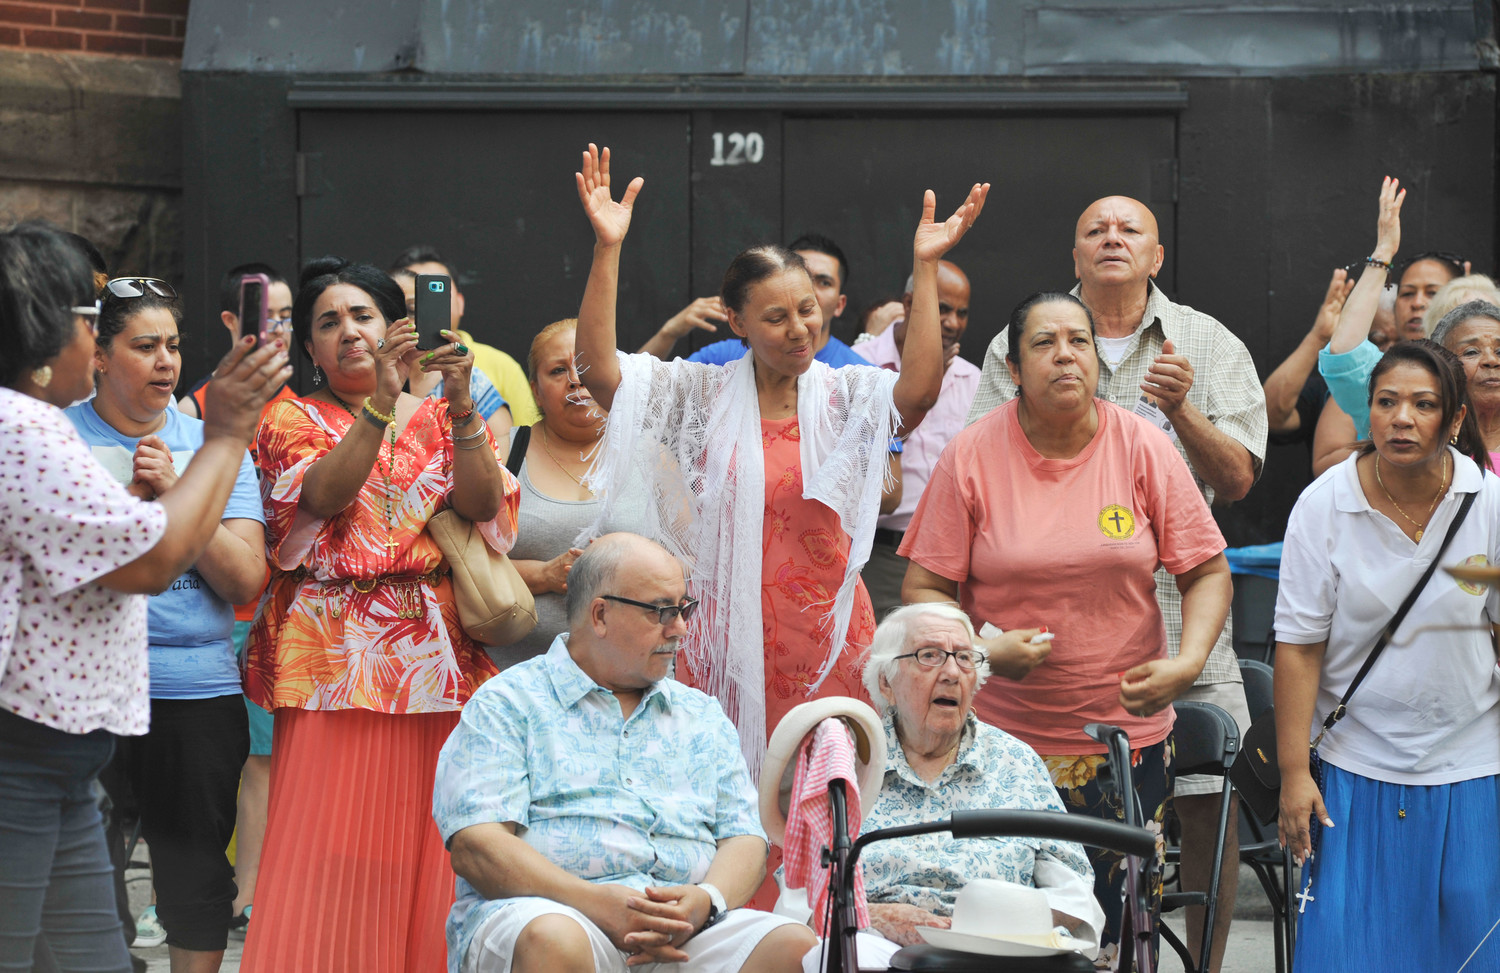 Emilio Rodriguez, 76, and his 103-year-old mother, Justa Rodriguez, both seated, join in the celebration of the Sunday street Mass outside St. Cecilia and Holy Agony Church in Manhattan July 1.